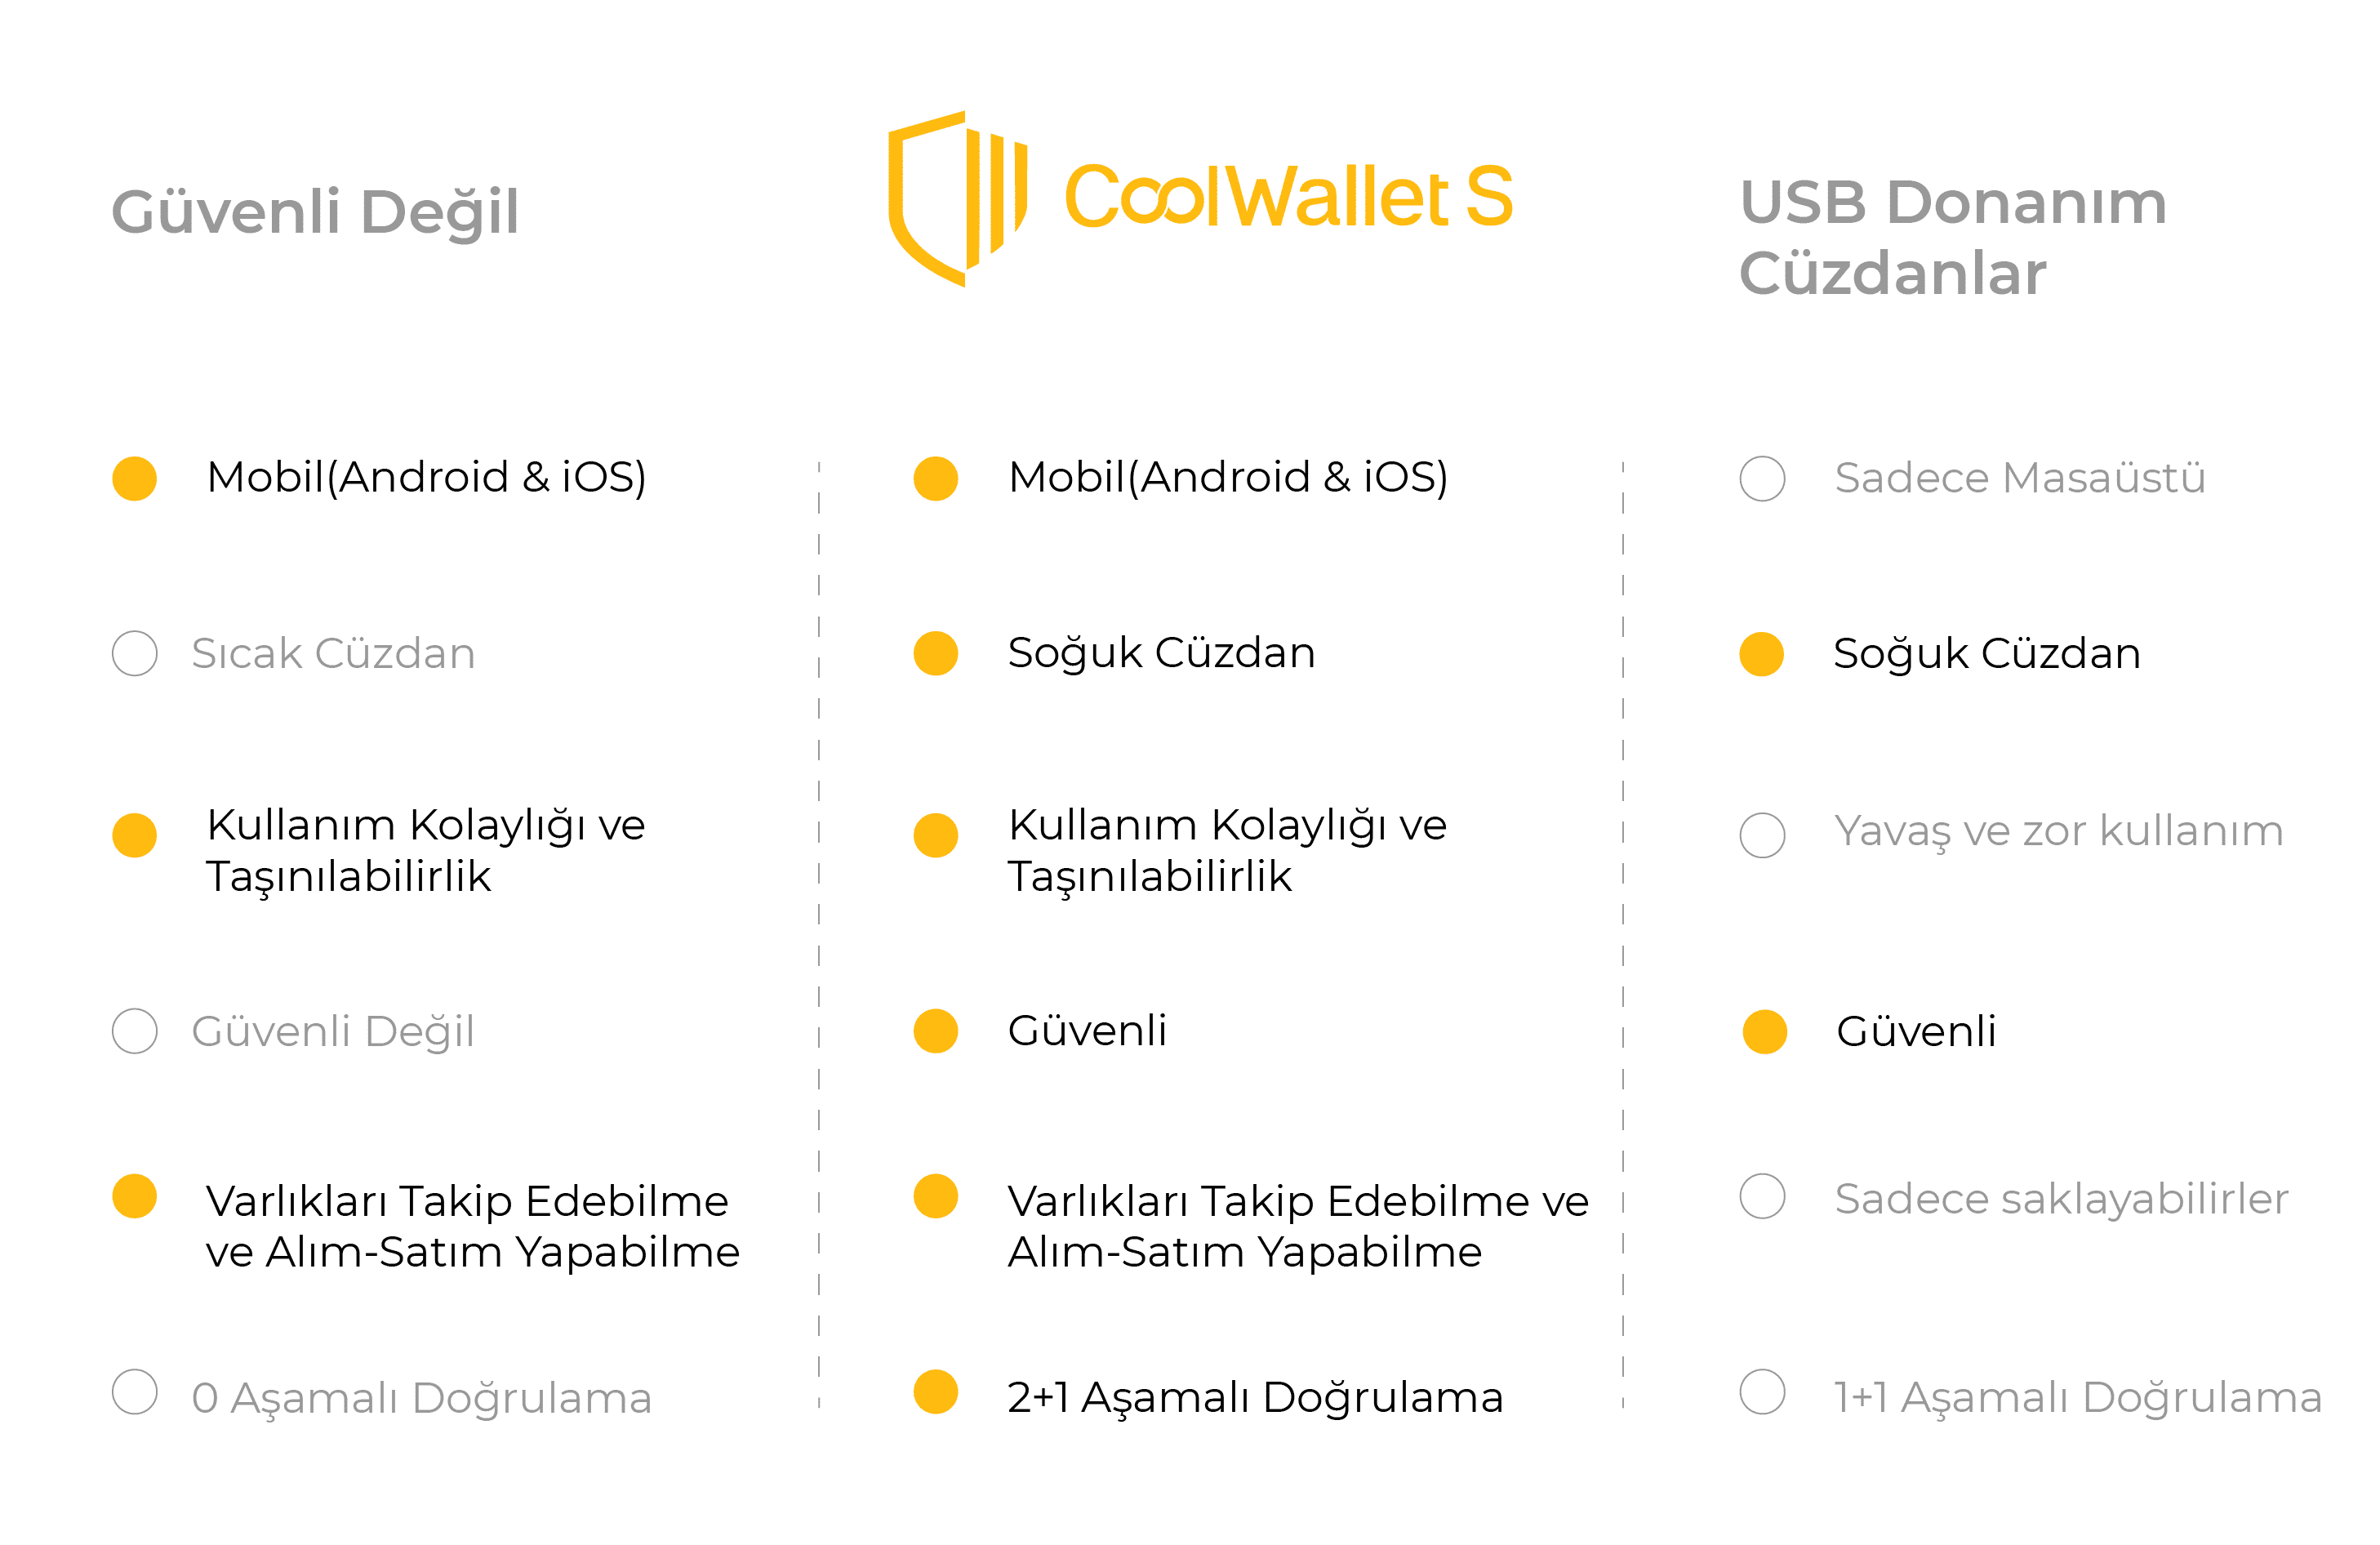 CoolWallet S Comparable Table